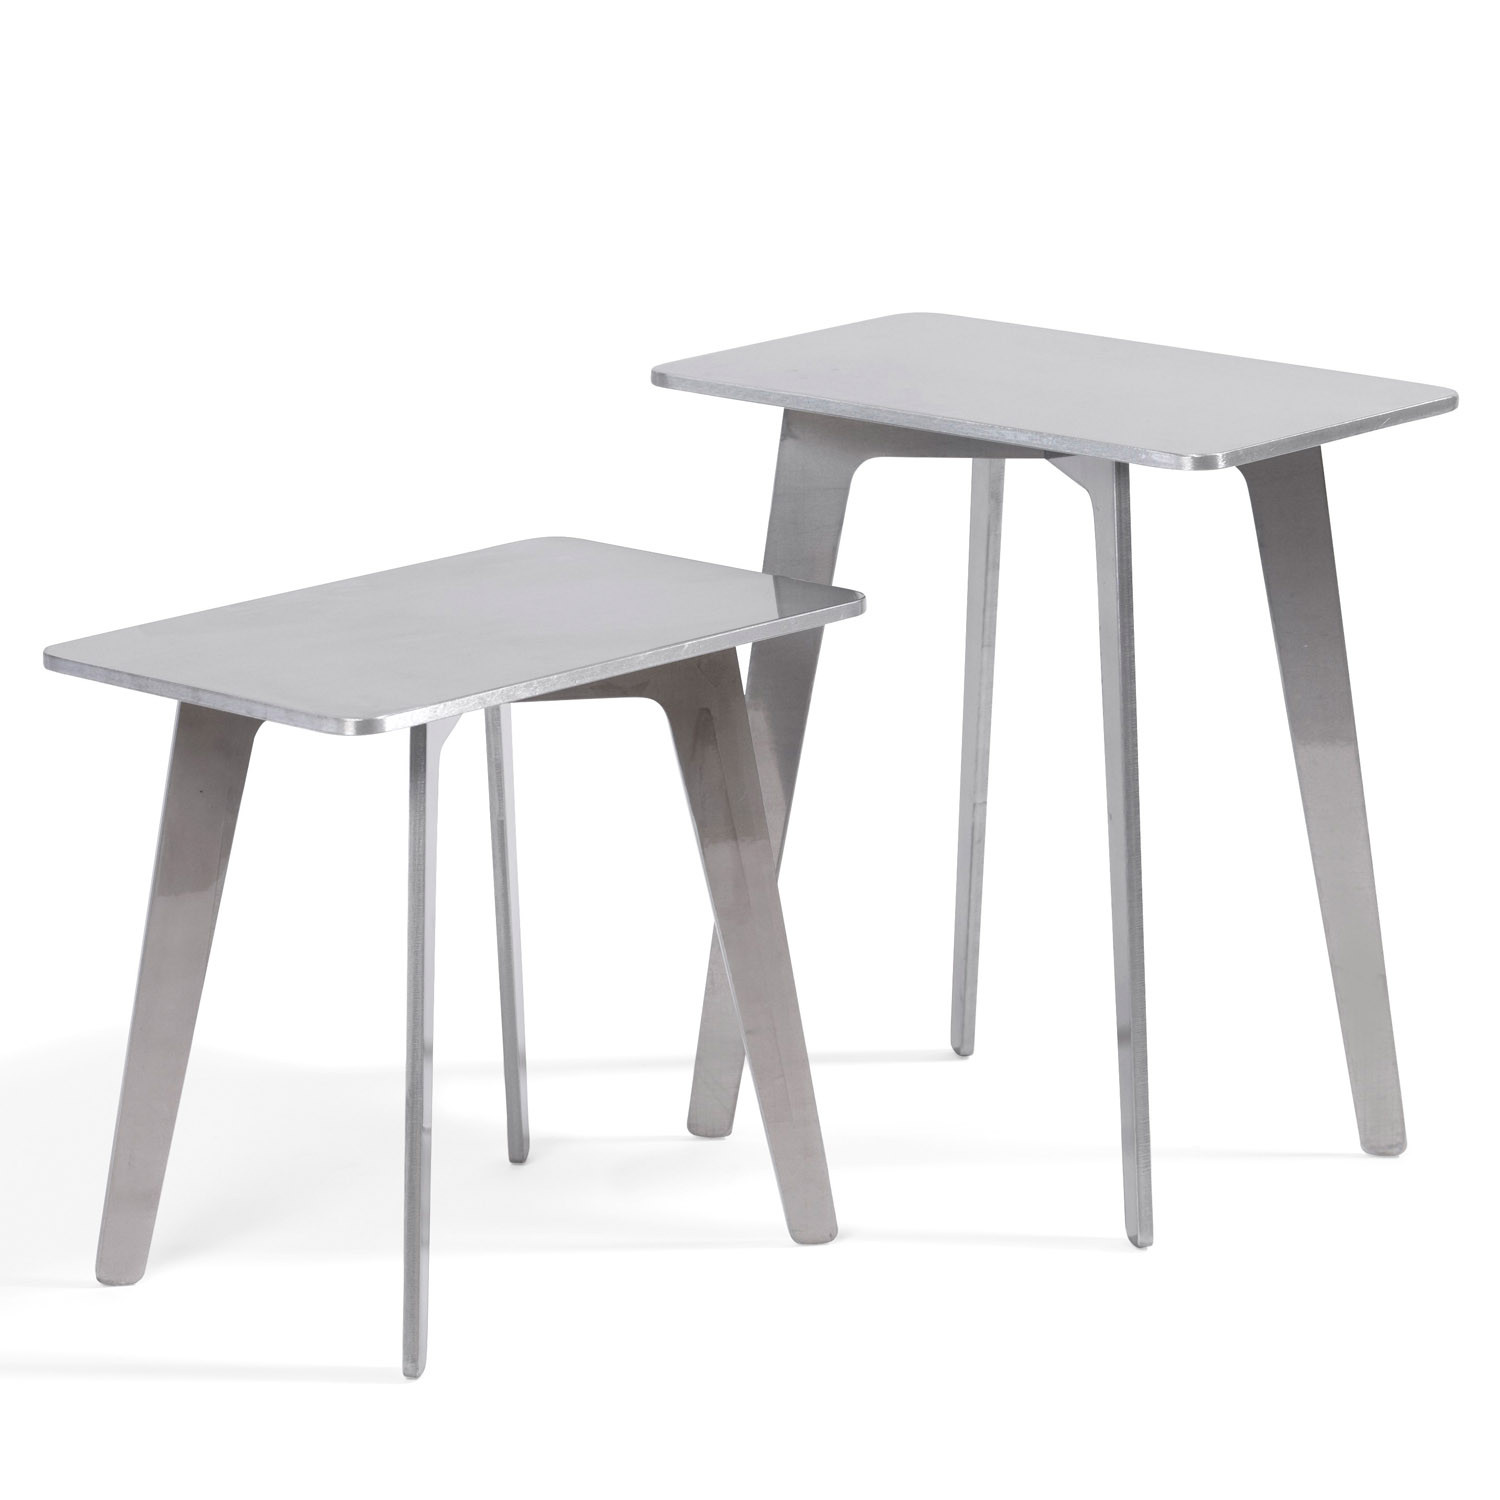 Mika Outside Tables with Square Top L28